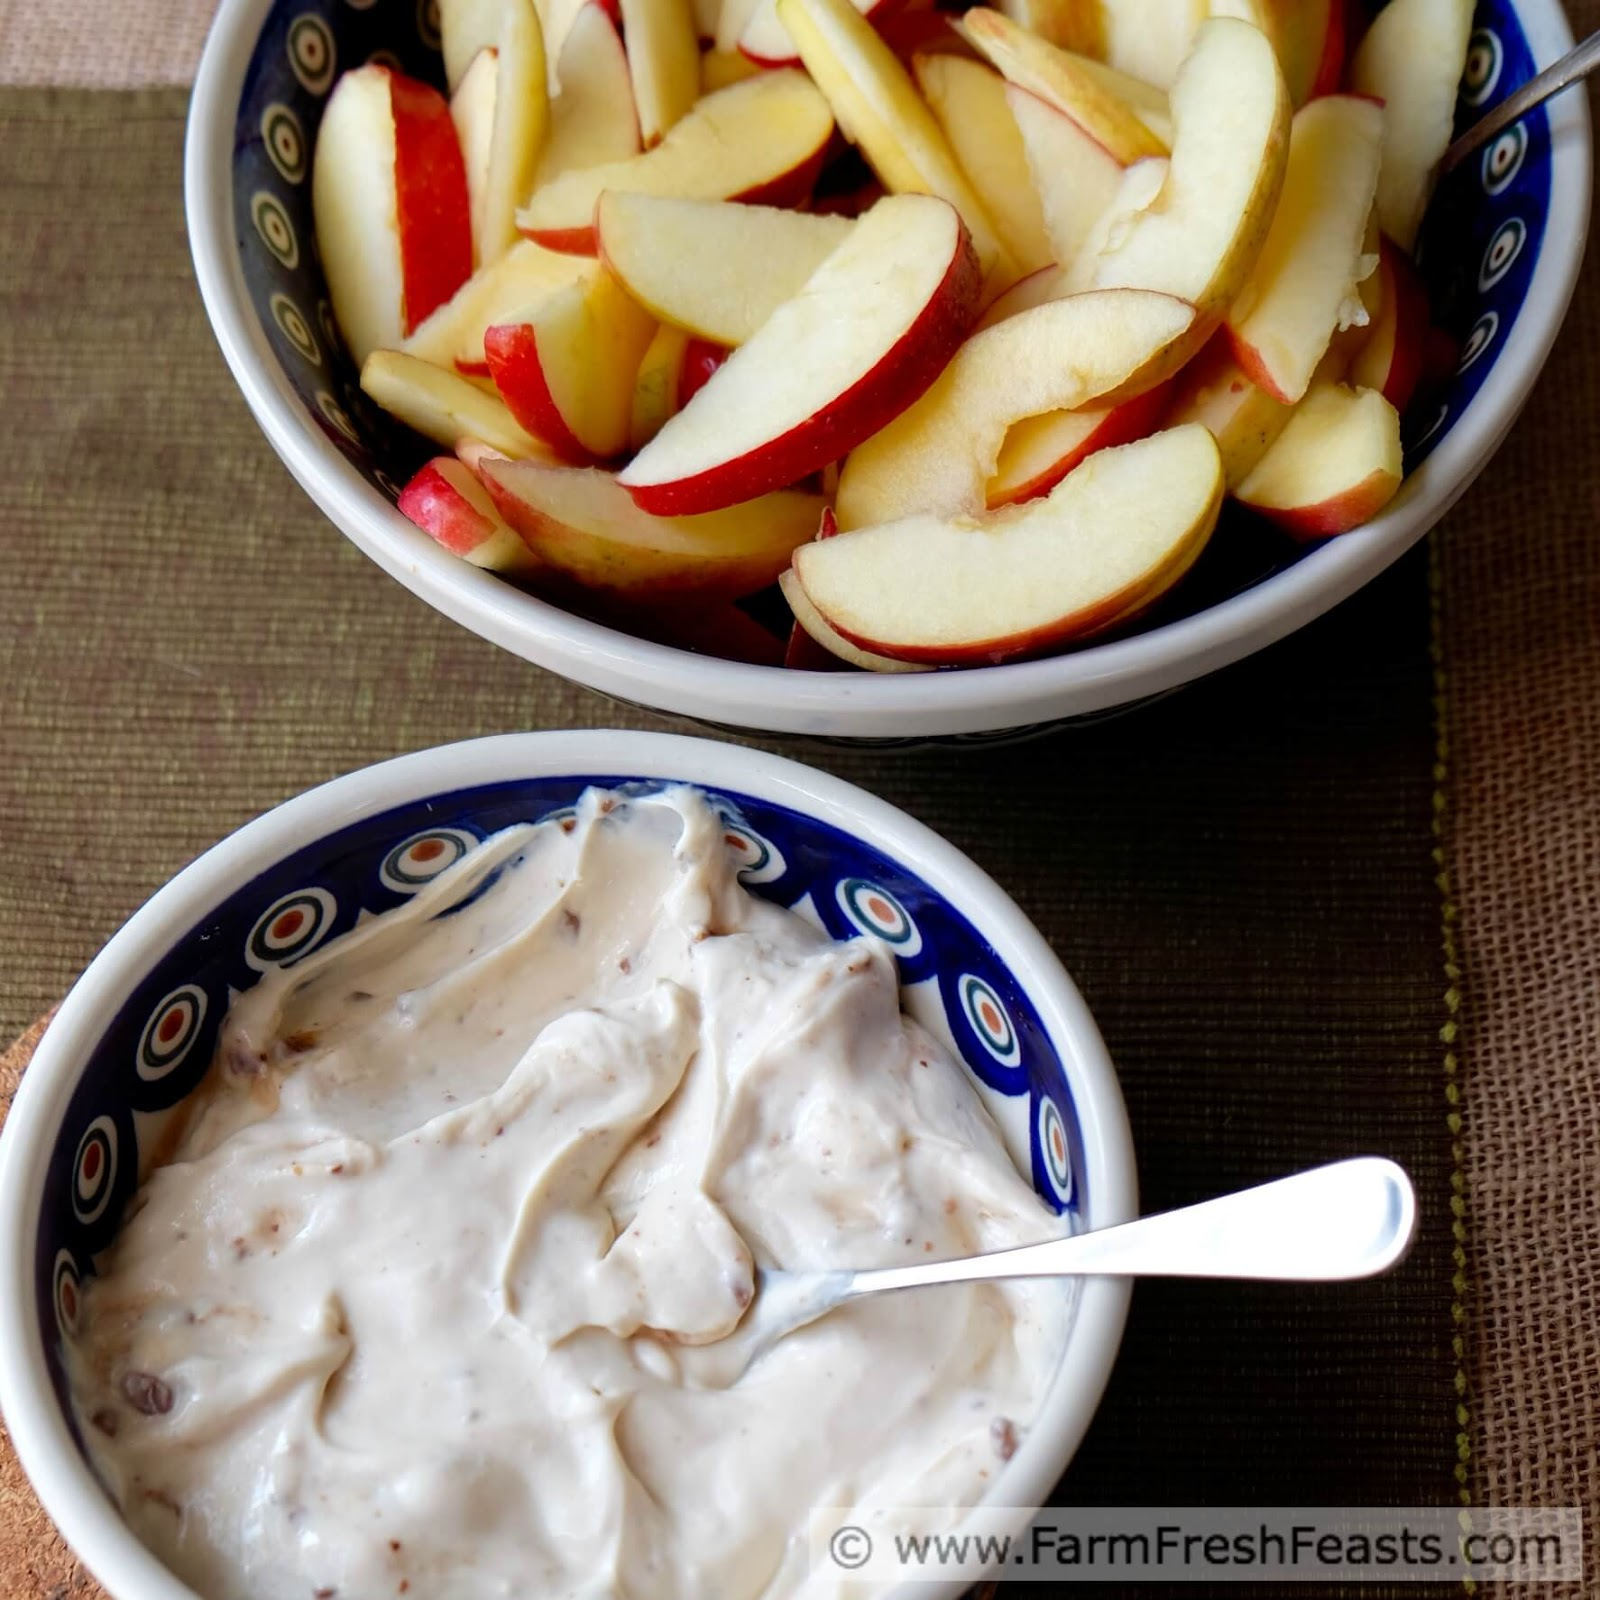 Farm Fresh Feasts Cream Cheese Toffee Dip For Fruit My